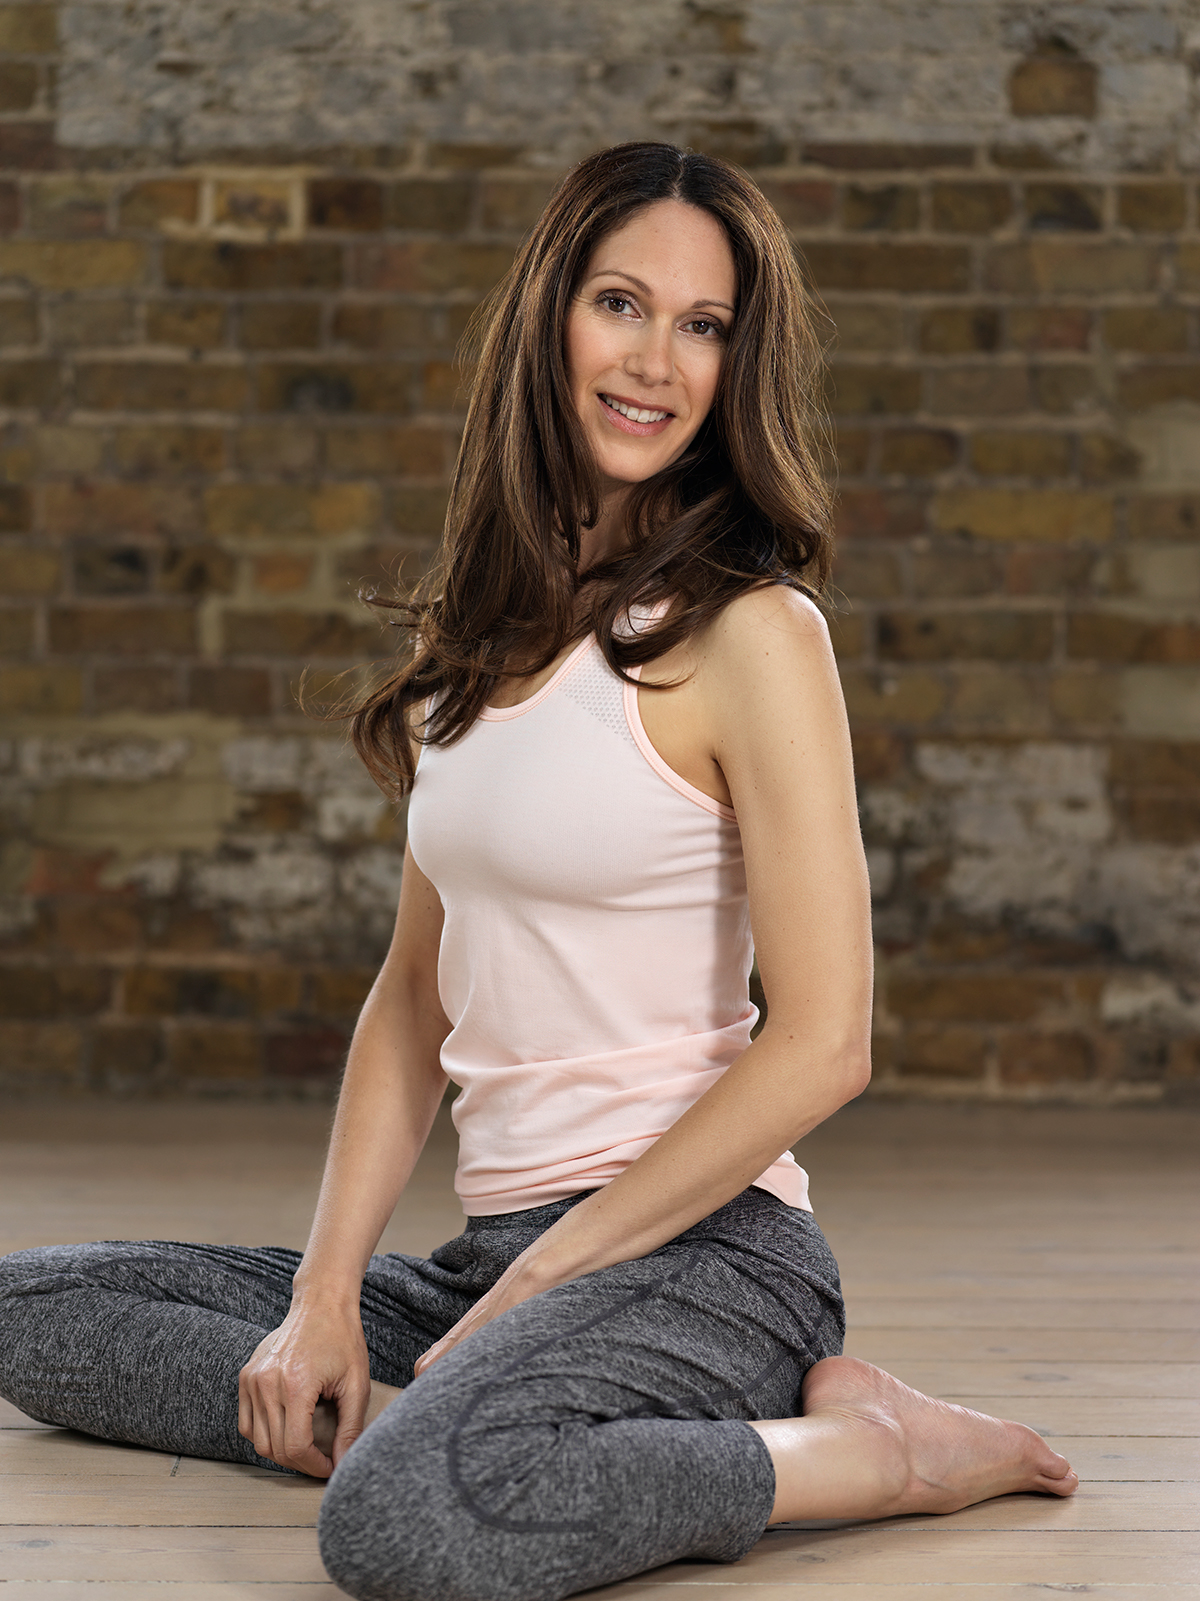 A photograph of Janine Tandy, against a brick wall.